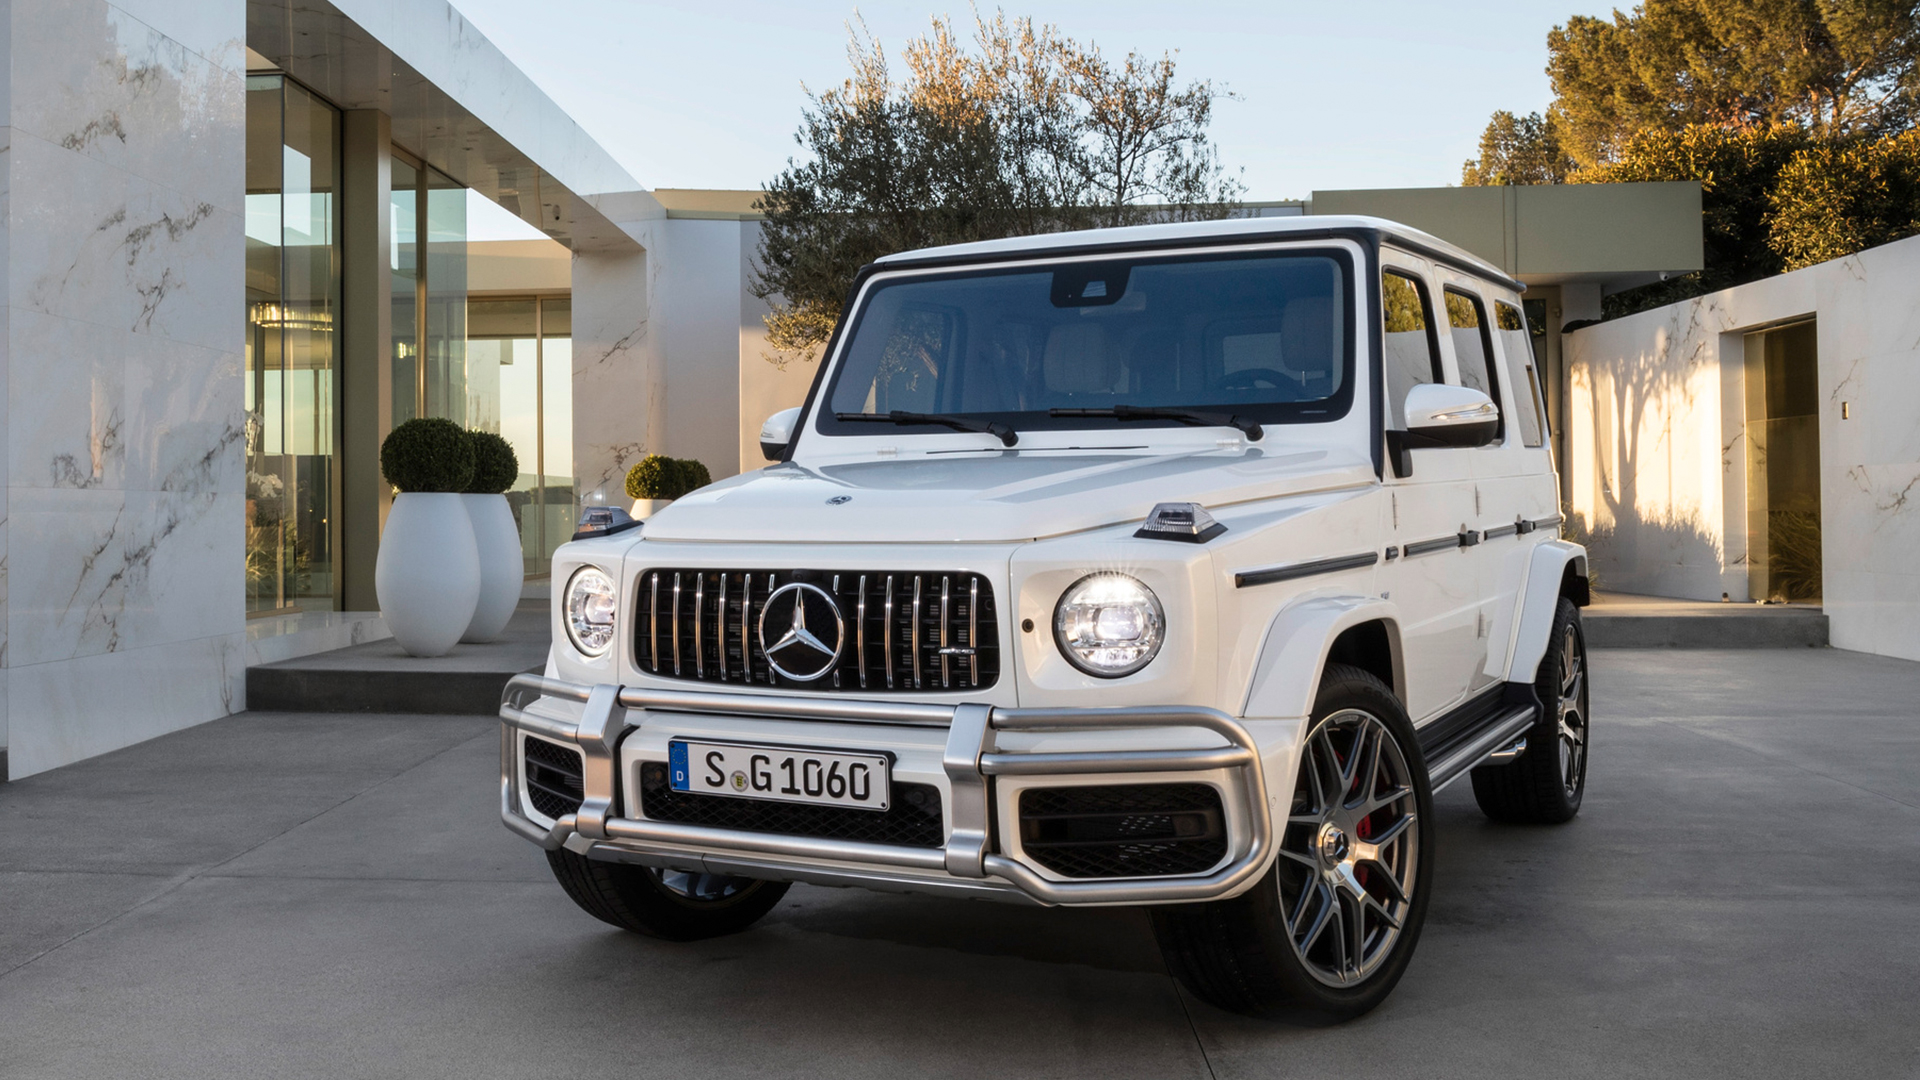 Mercedes Benz G Class 2016 G 500 Price Mileage Reviews